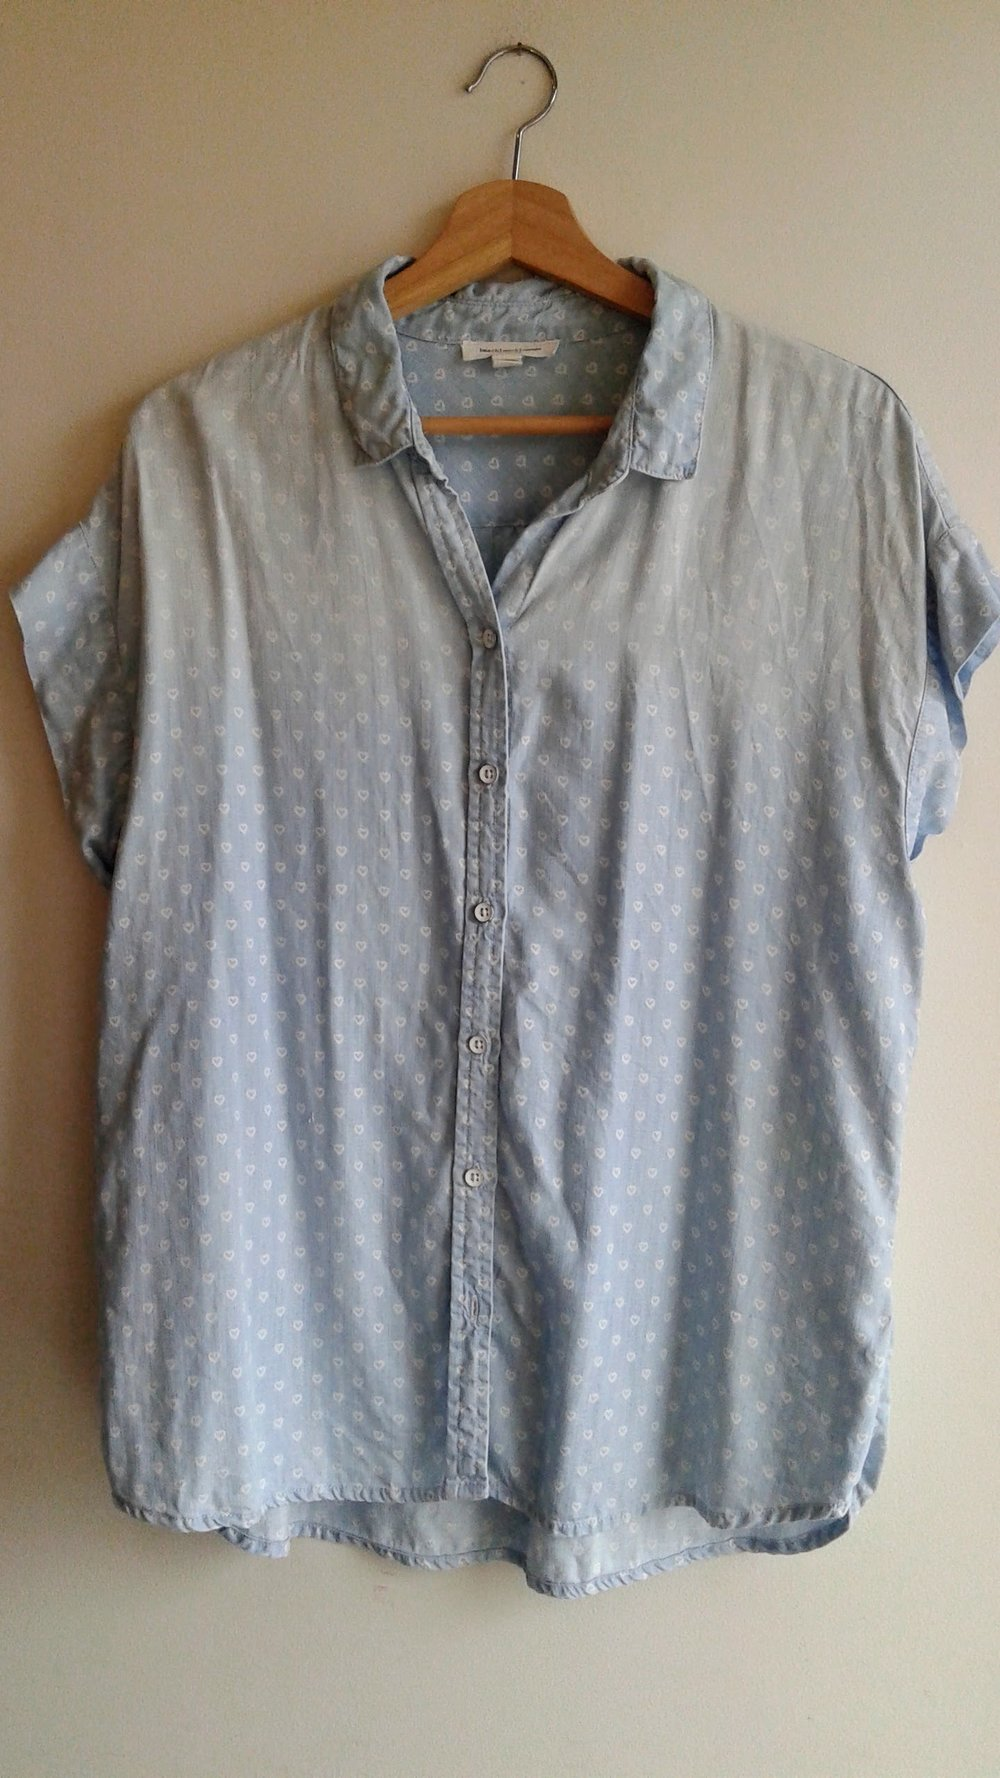 Beach Lunch Lounge  top; Size L, $26